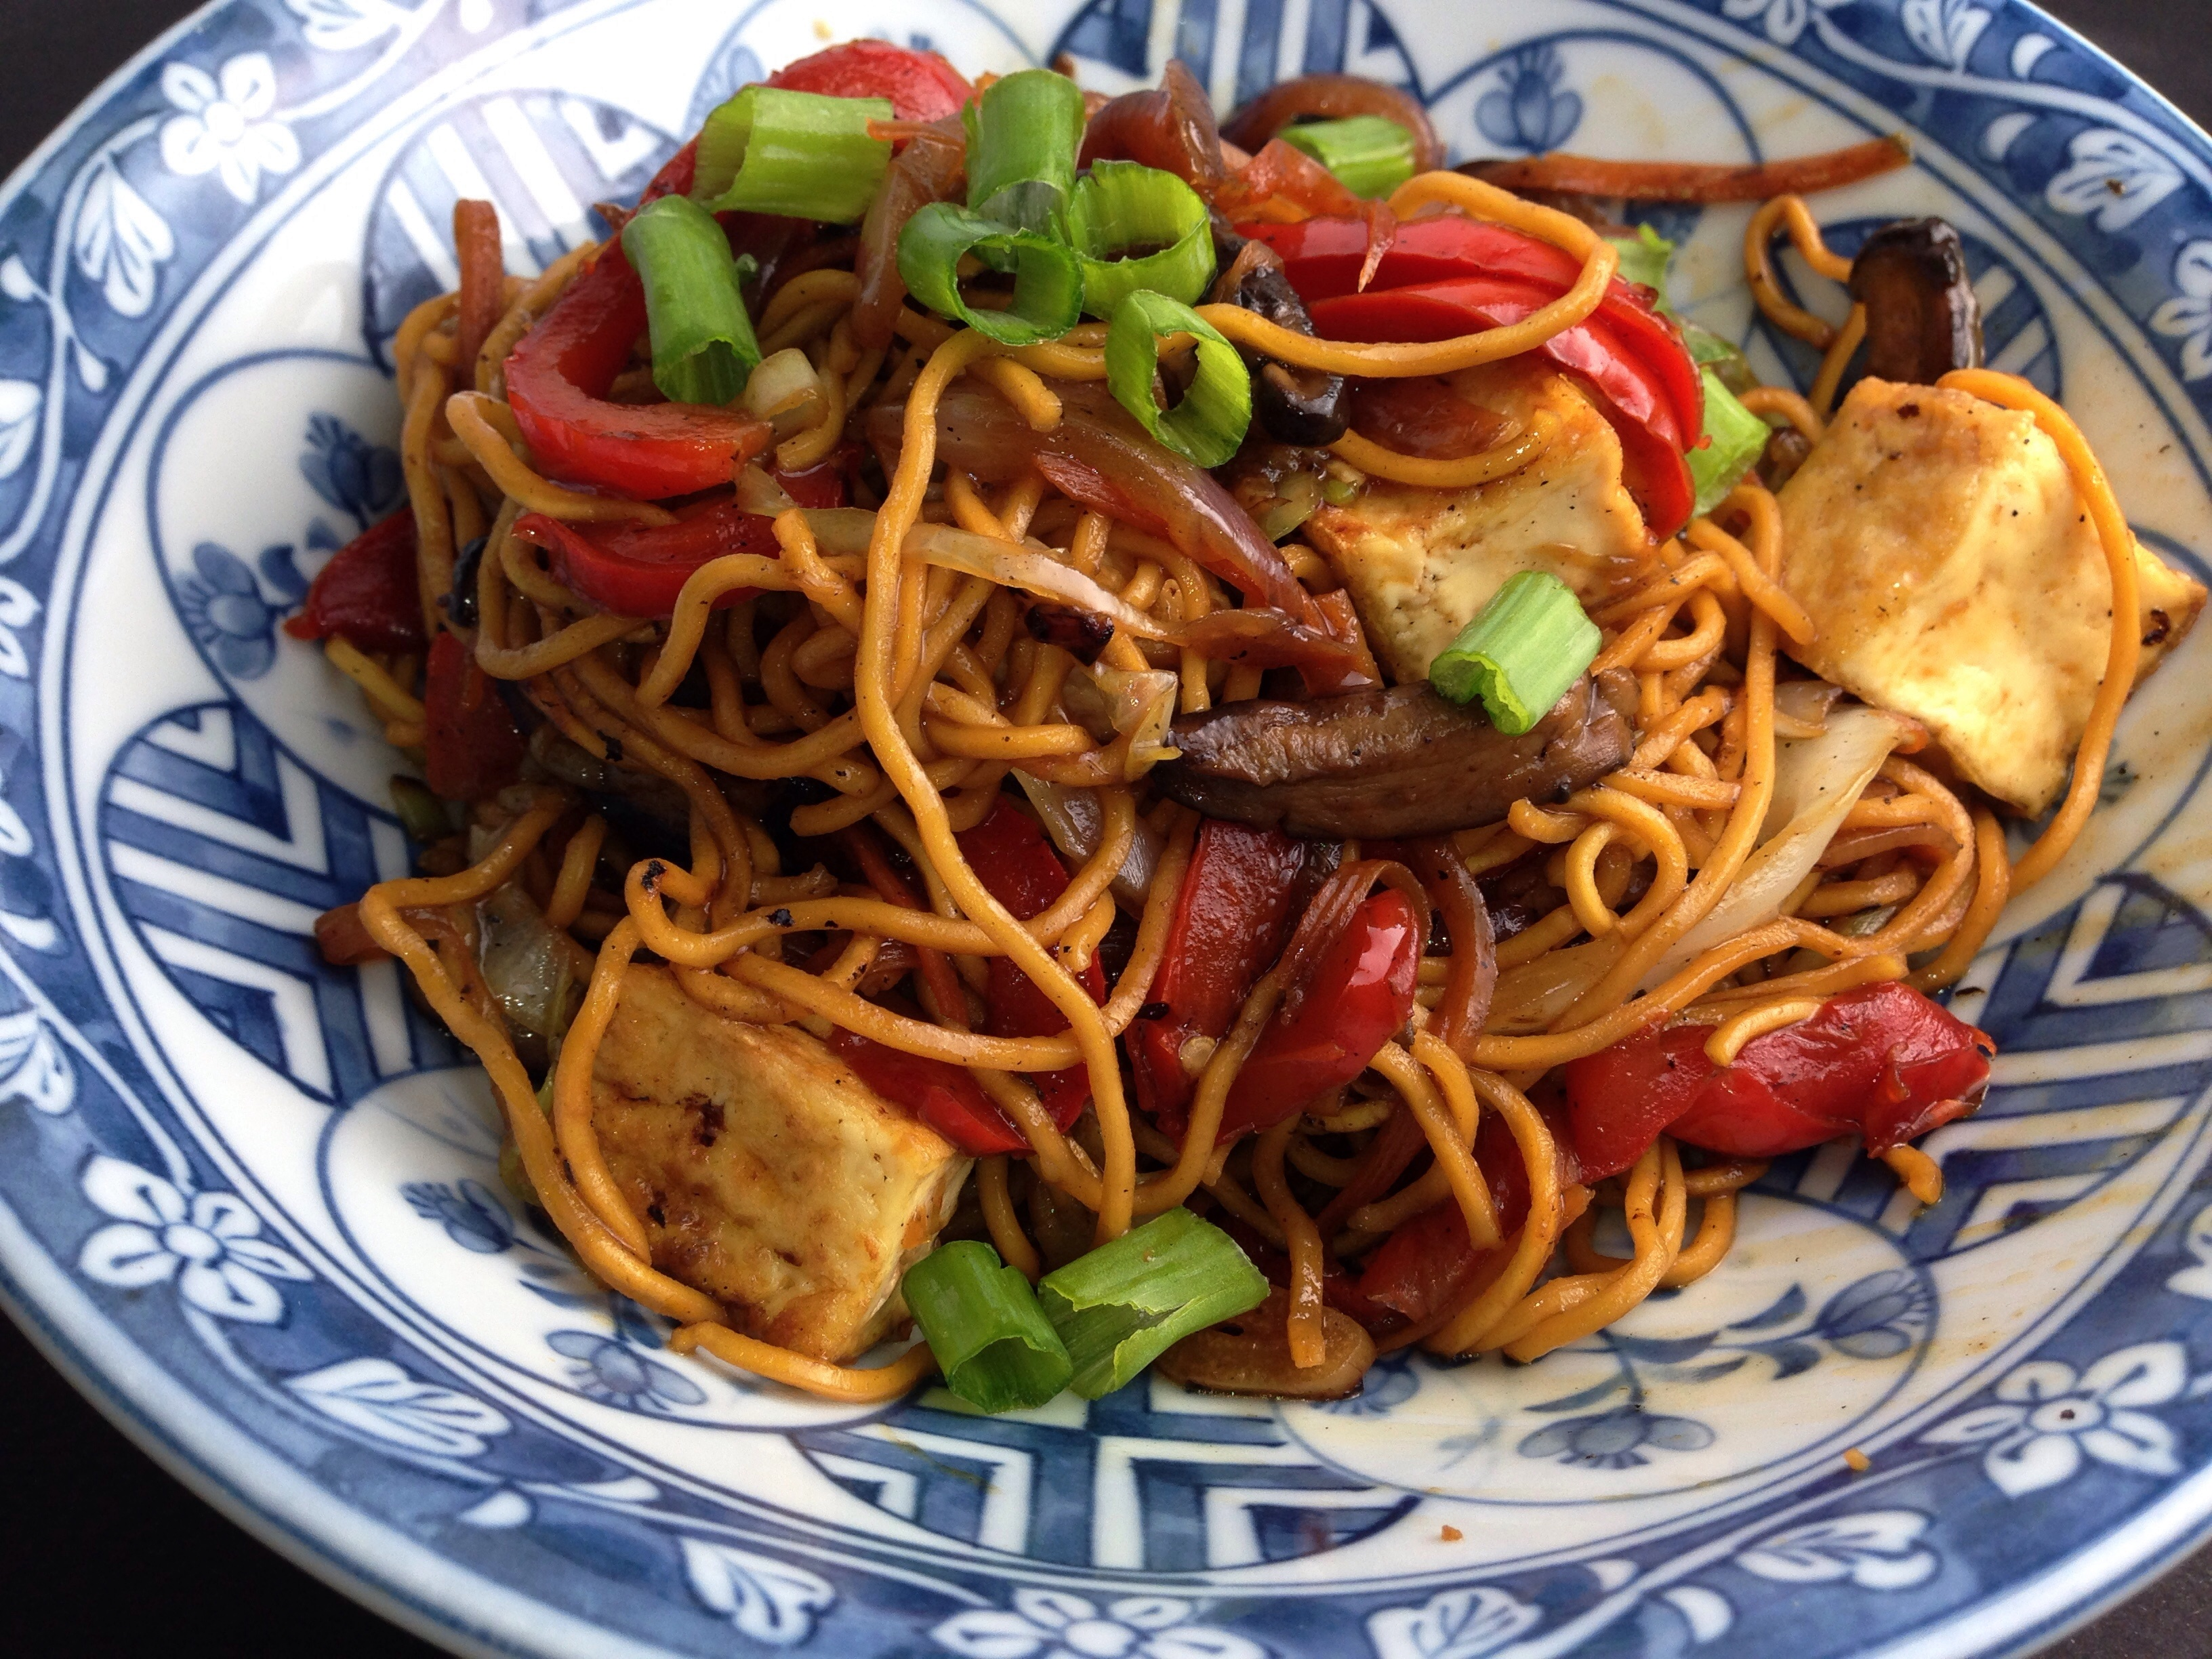 Sweet Soy Saucy Vegetable & Tofu Stir Fry Noodles - Mayabugs's Recipes